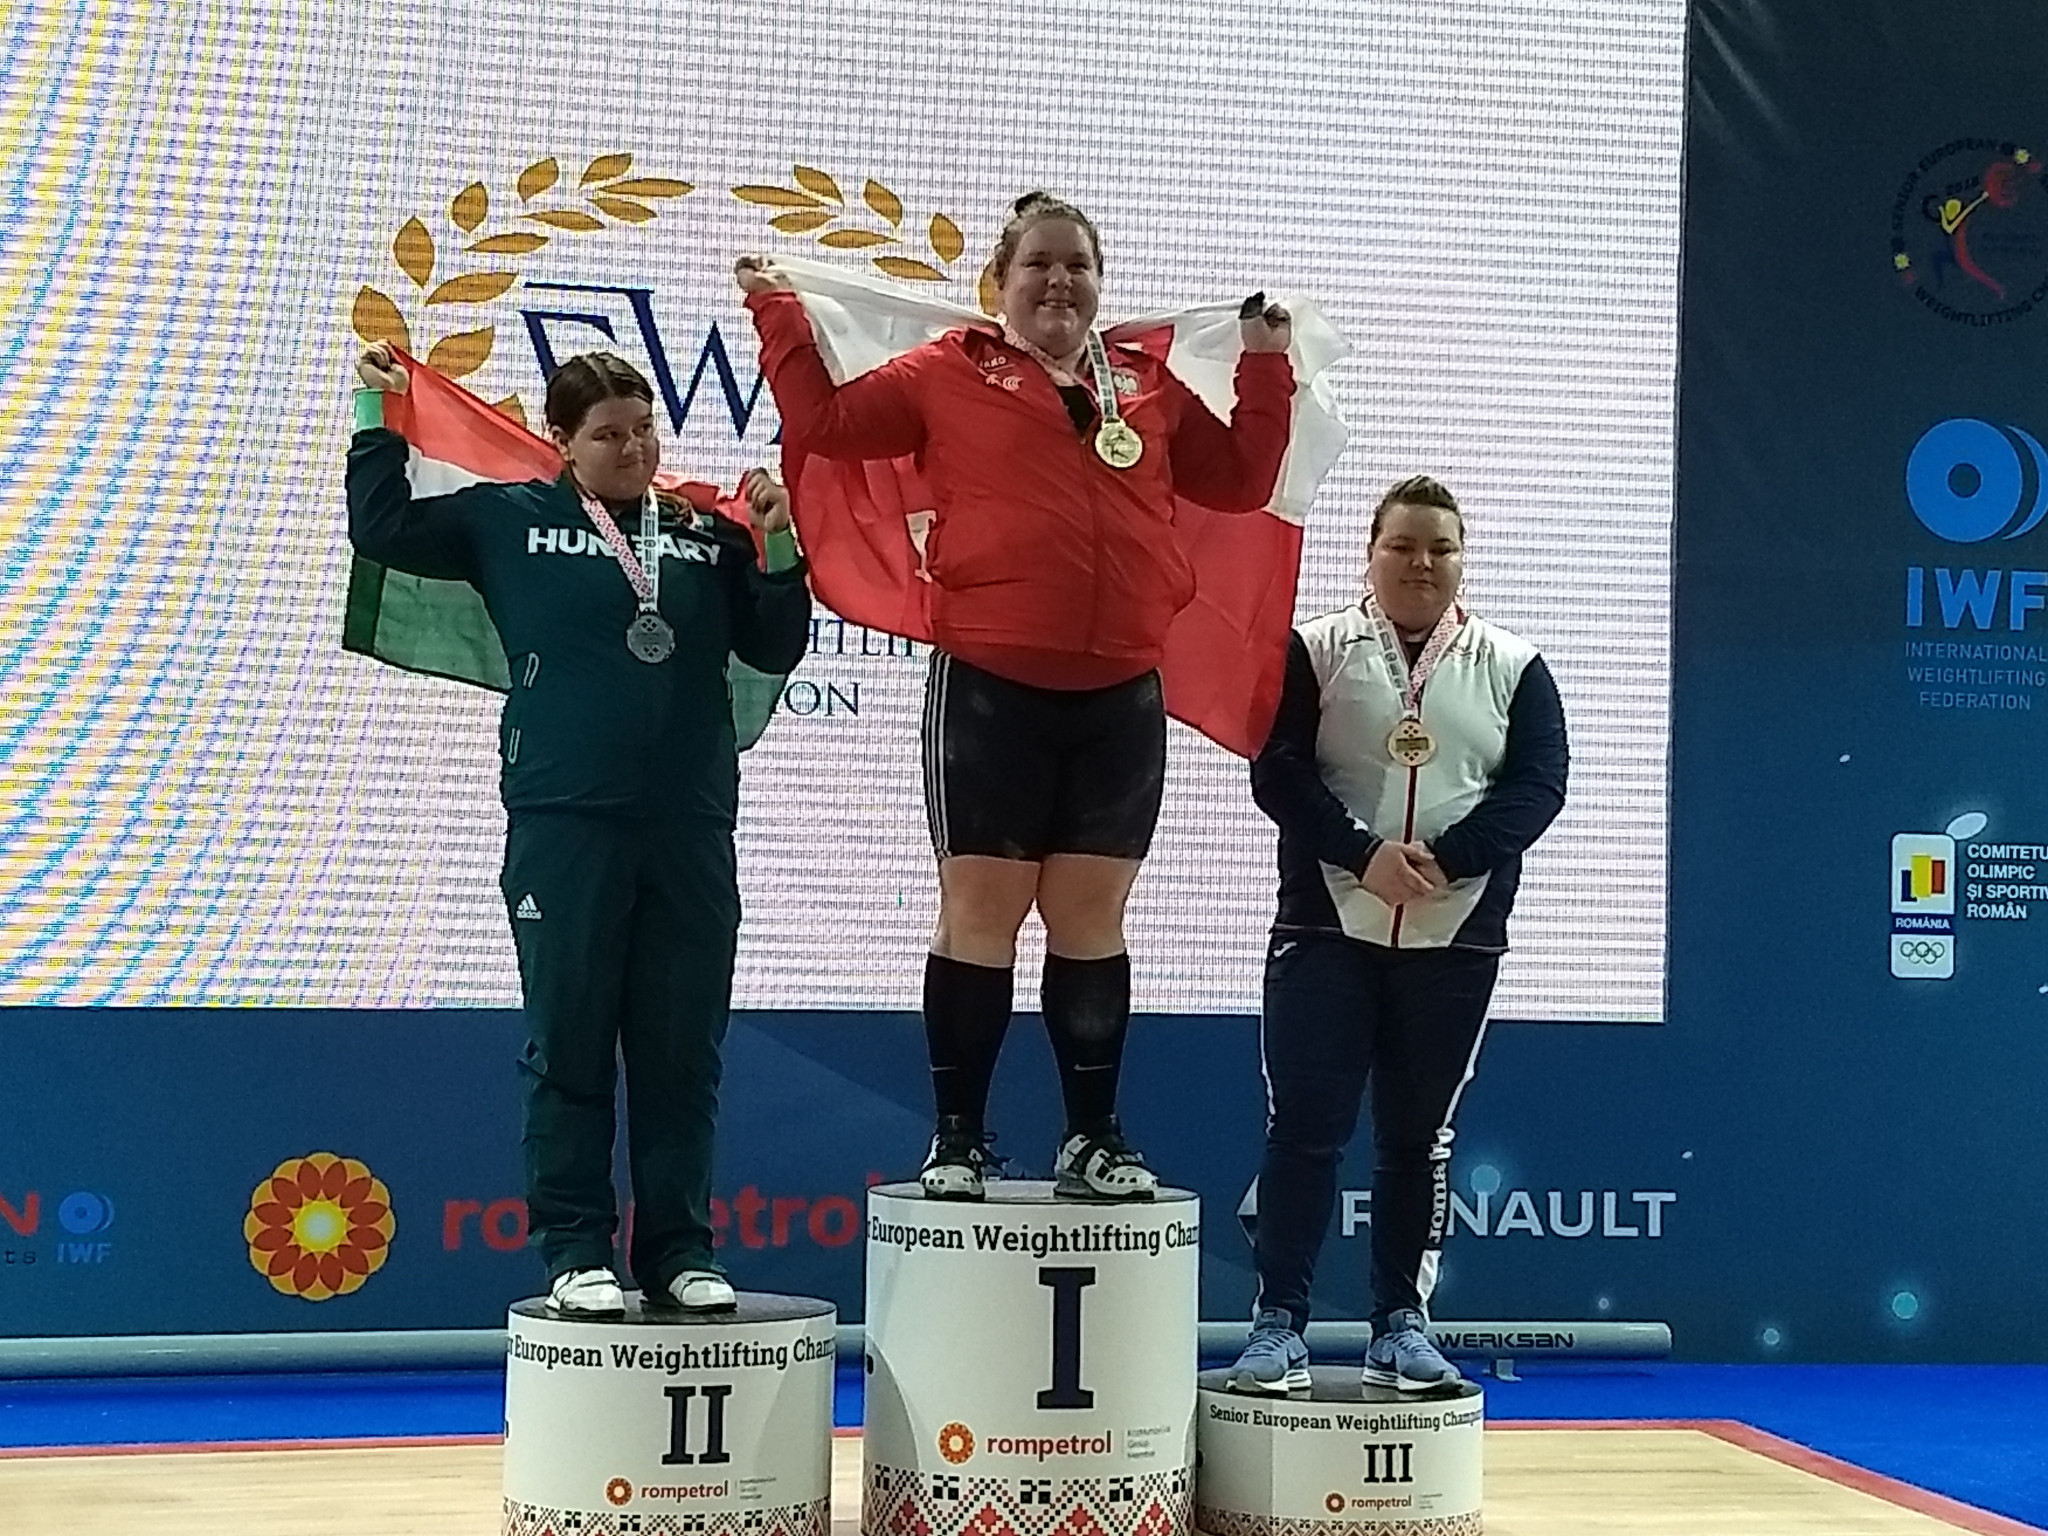 Aleksandra Mierzejewska, centre, made it a Polish double today at the European Championships when she won the women's 90kg title in Romania today ©Brian Oliver/ITG